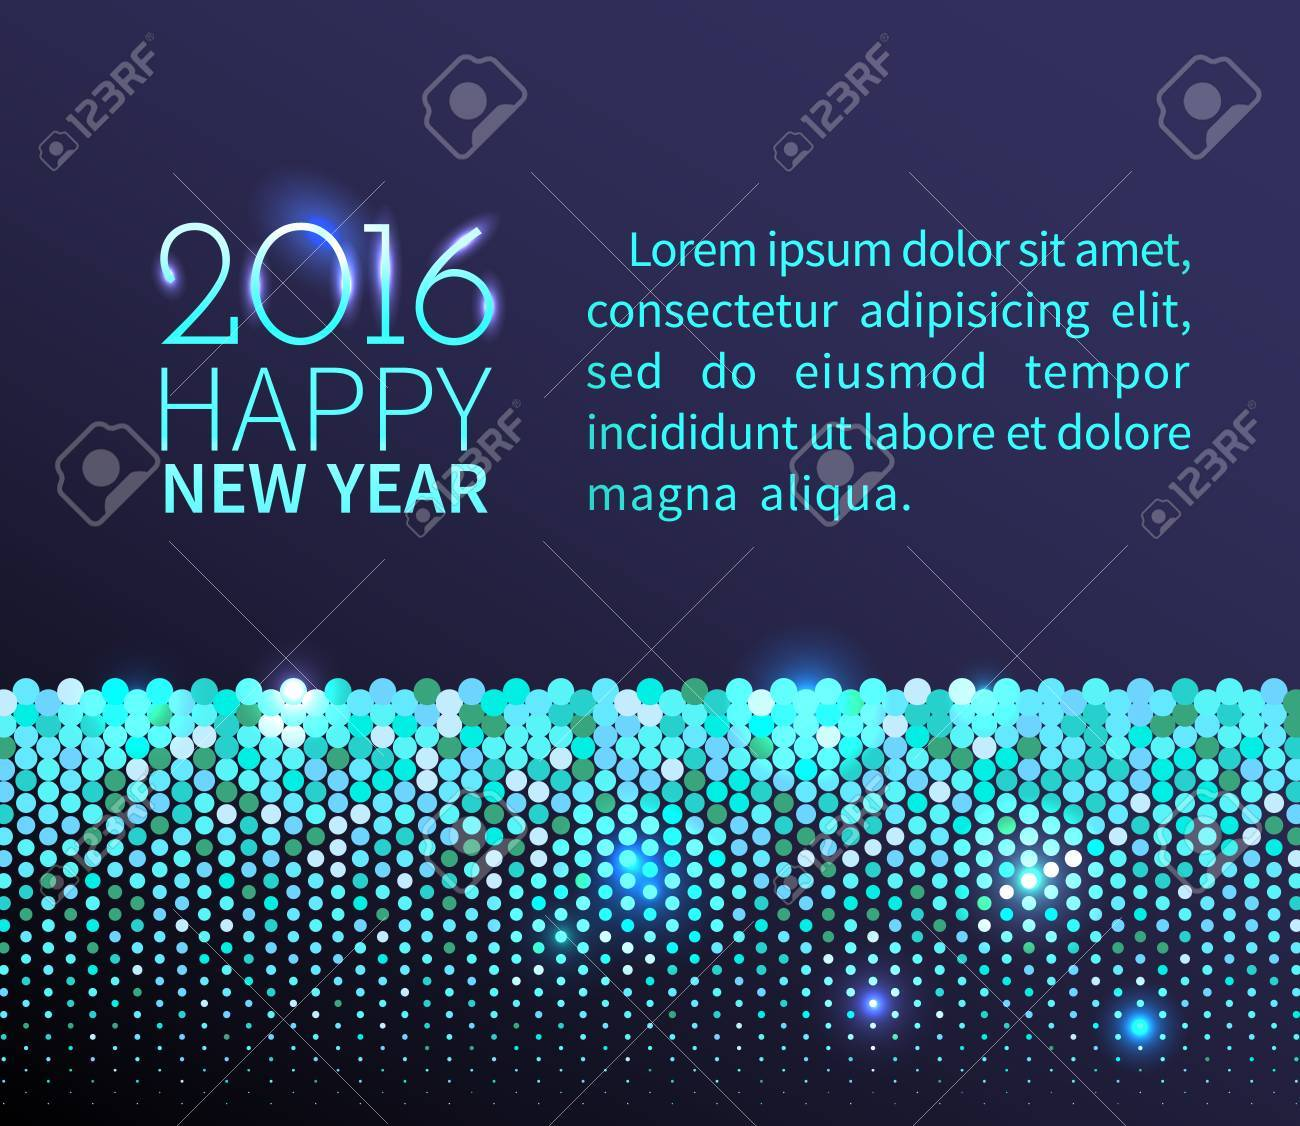 new year 2016 background blue shining horizontal border with sparkling sequins in the disco style